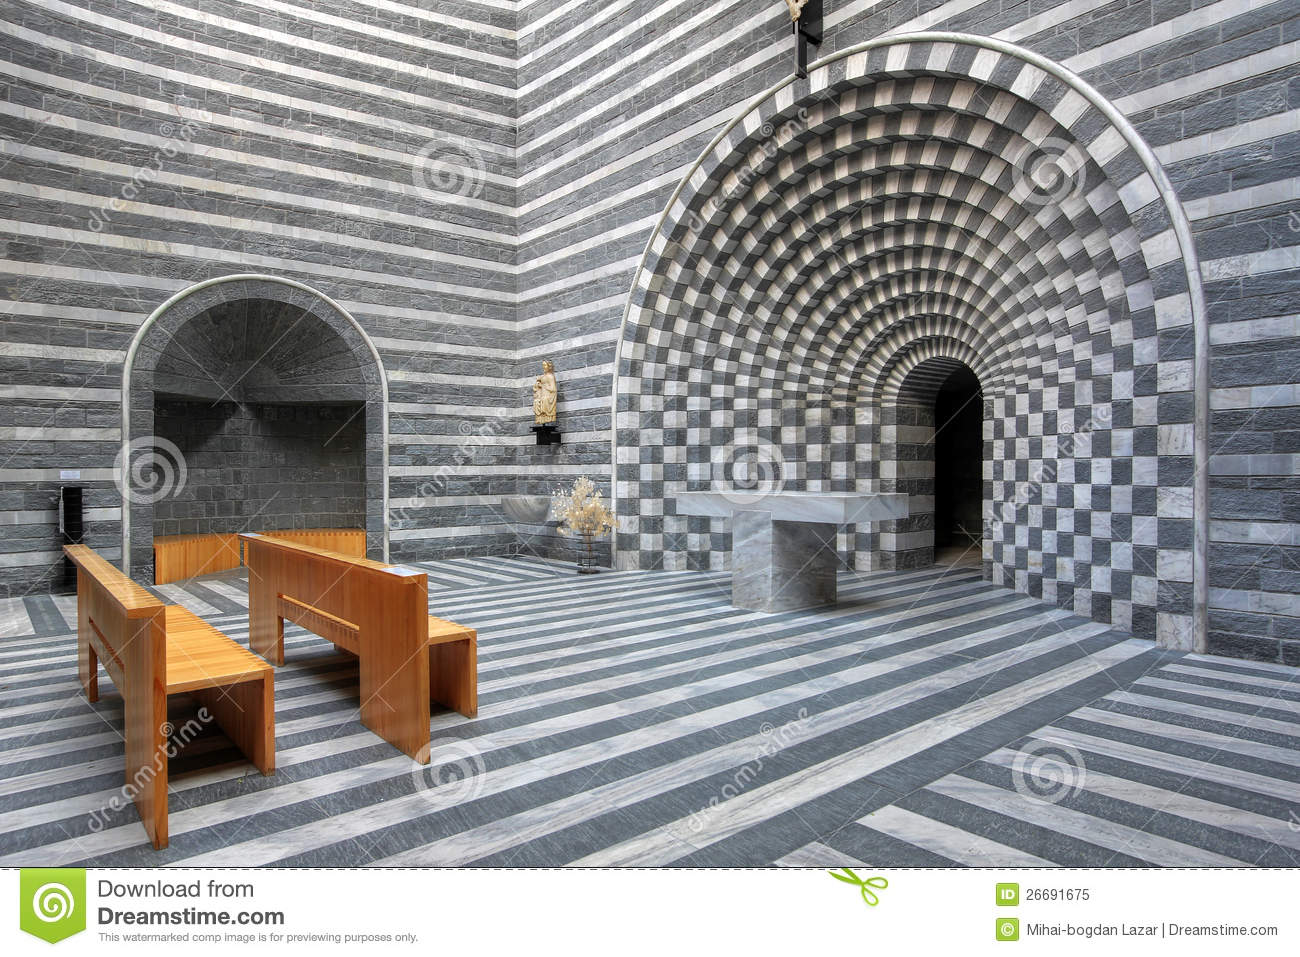 church interior design ideas smartrubixcom modern church interior - Church Interior Design Ideas